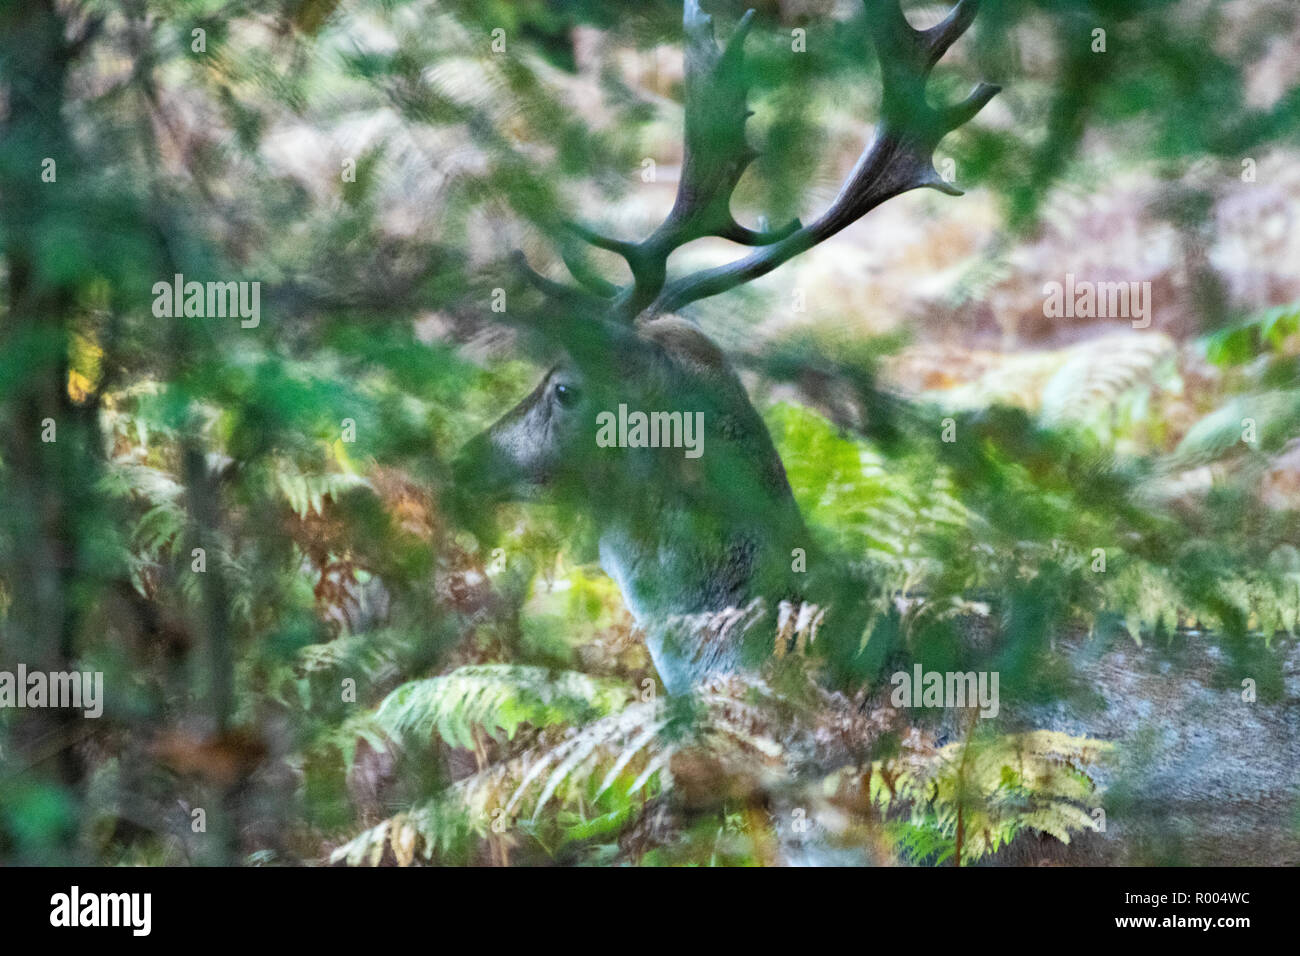 Deer stag with large antlers hiding in fern in a forest Stock Photo